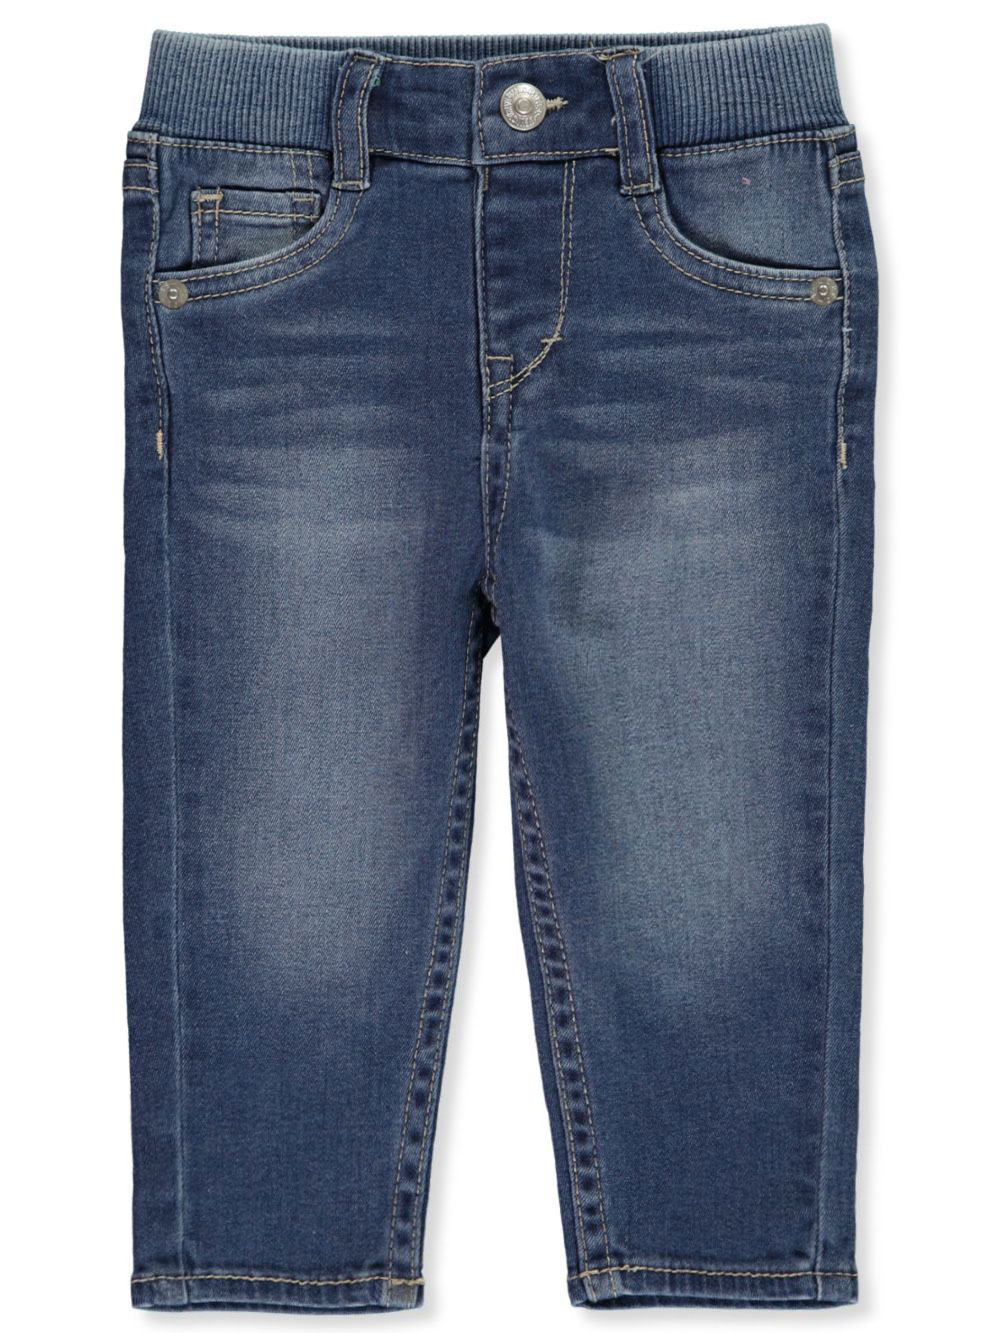 Girls Medium Denim Jeans